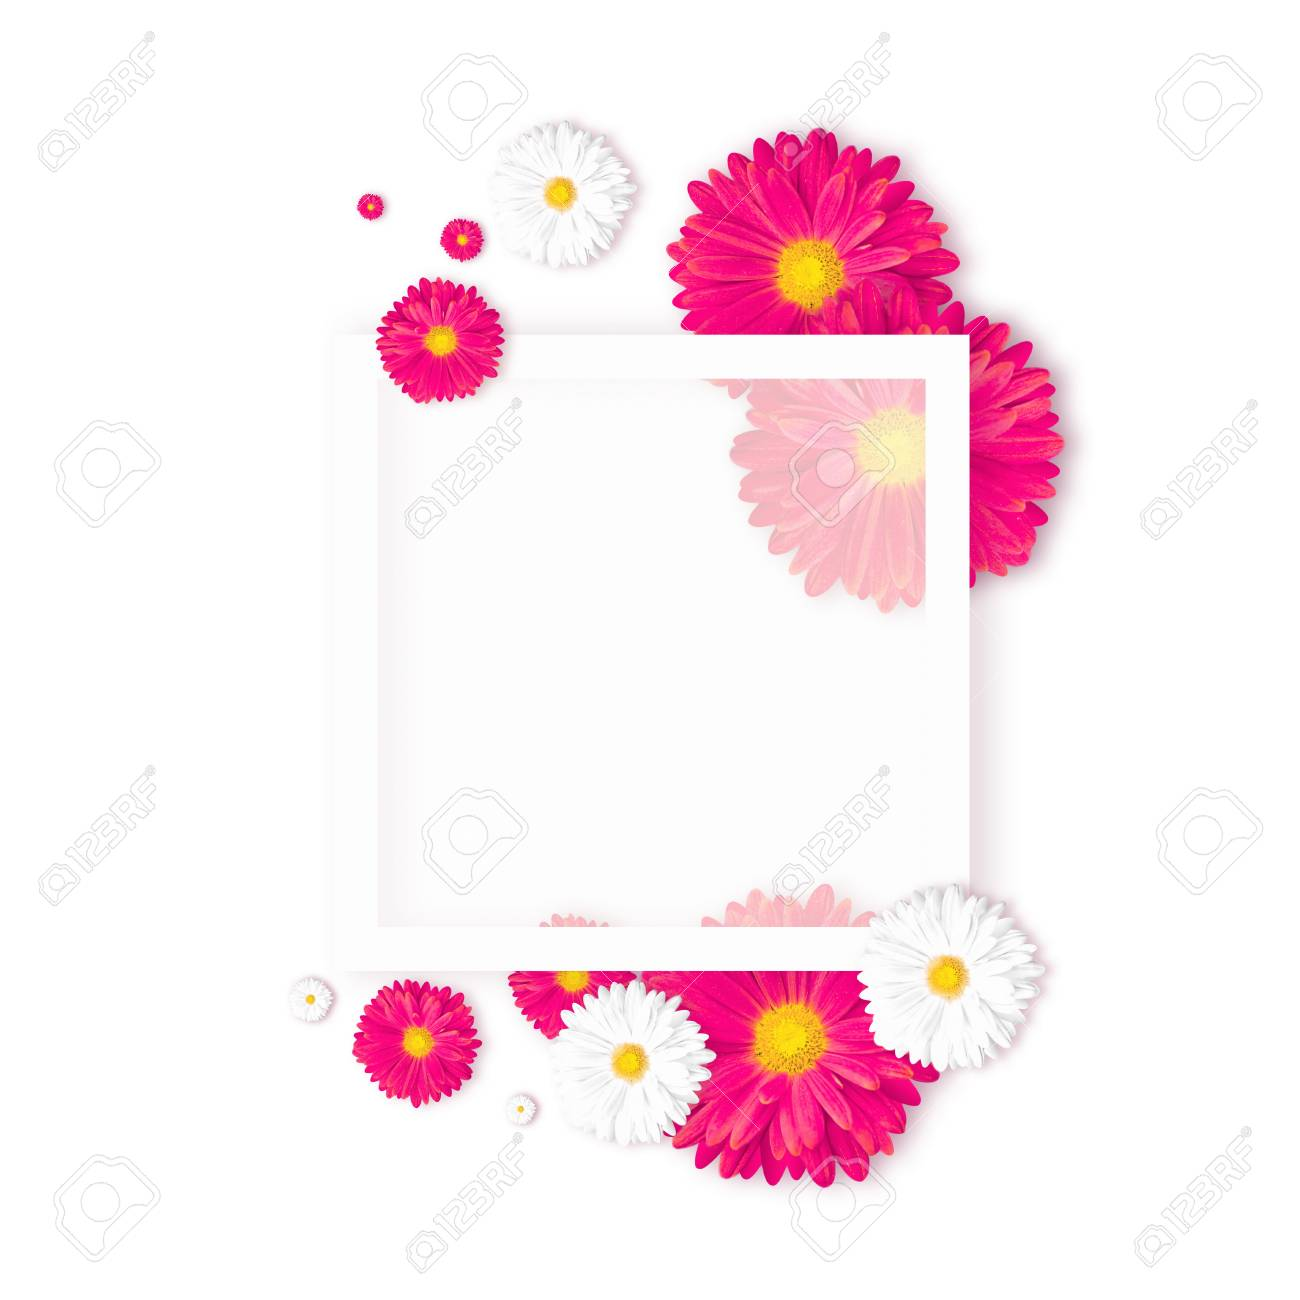 White Background With Beautiful Colorful Flower Wallpaper Flyers Stock Photo Picture And Royalty Free Image Image